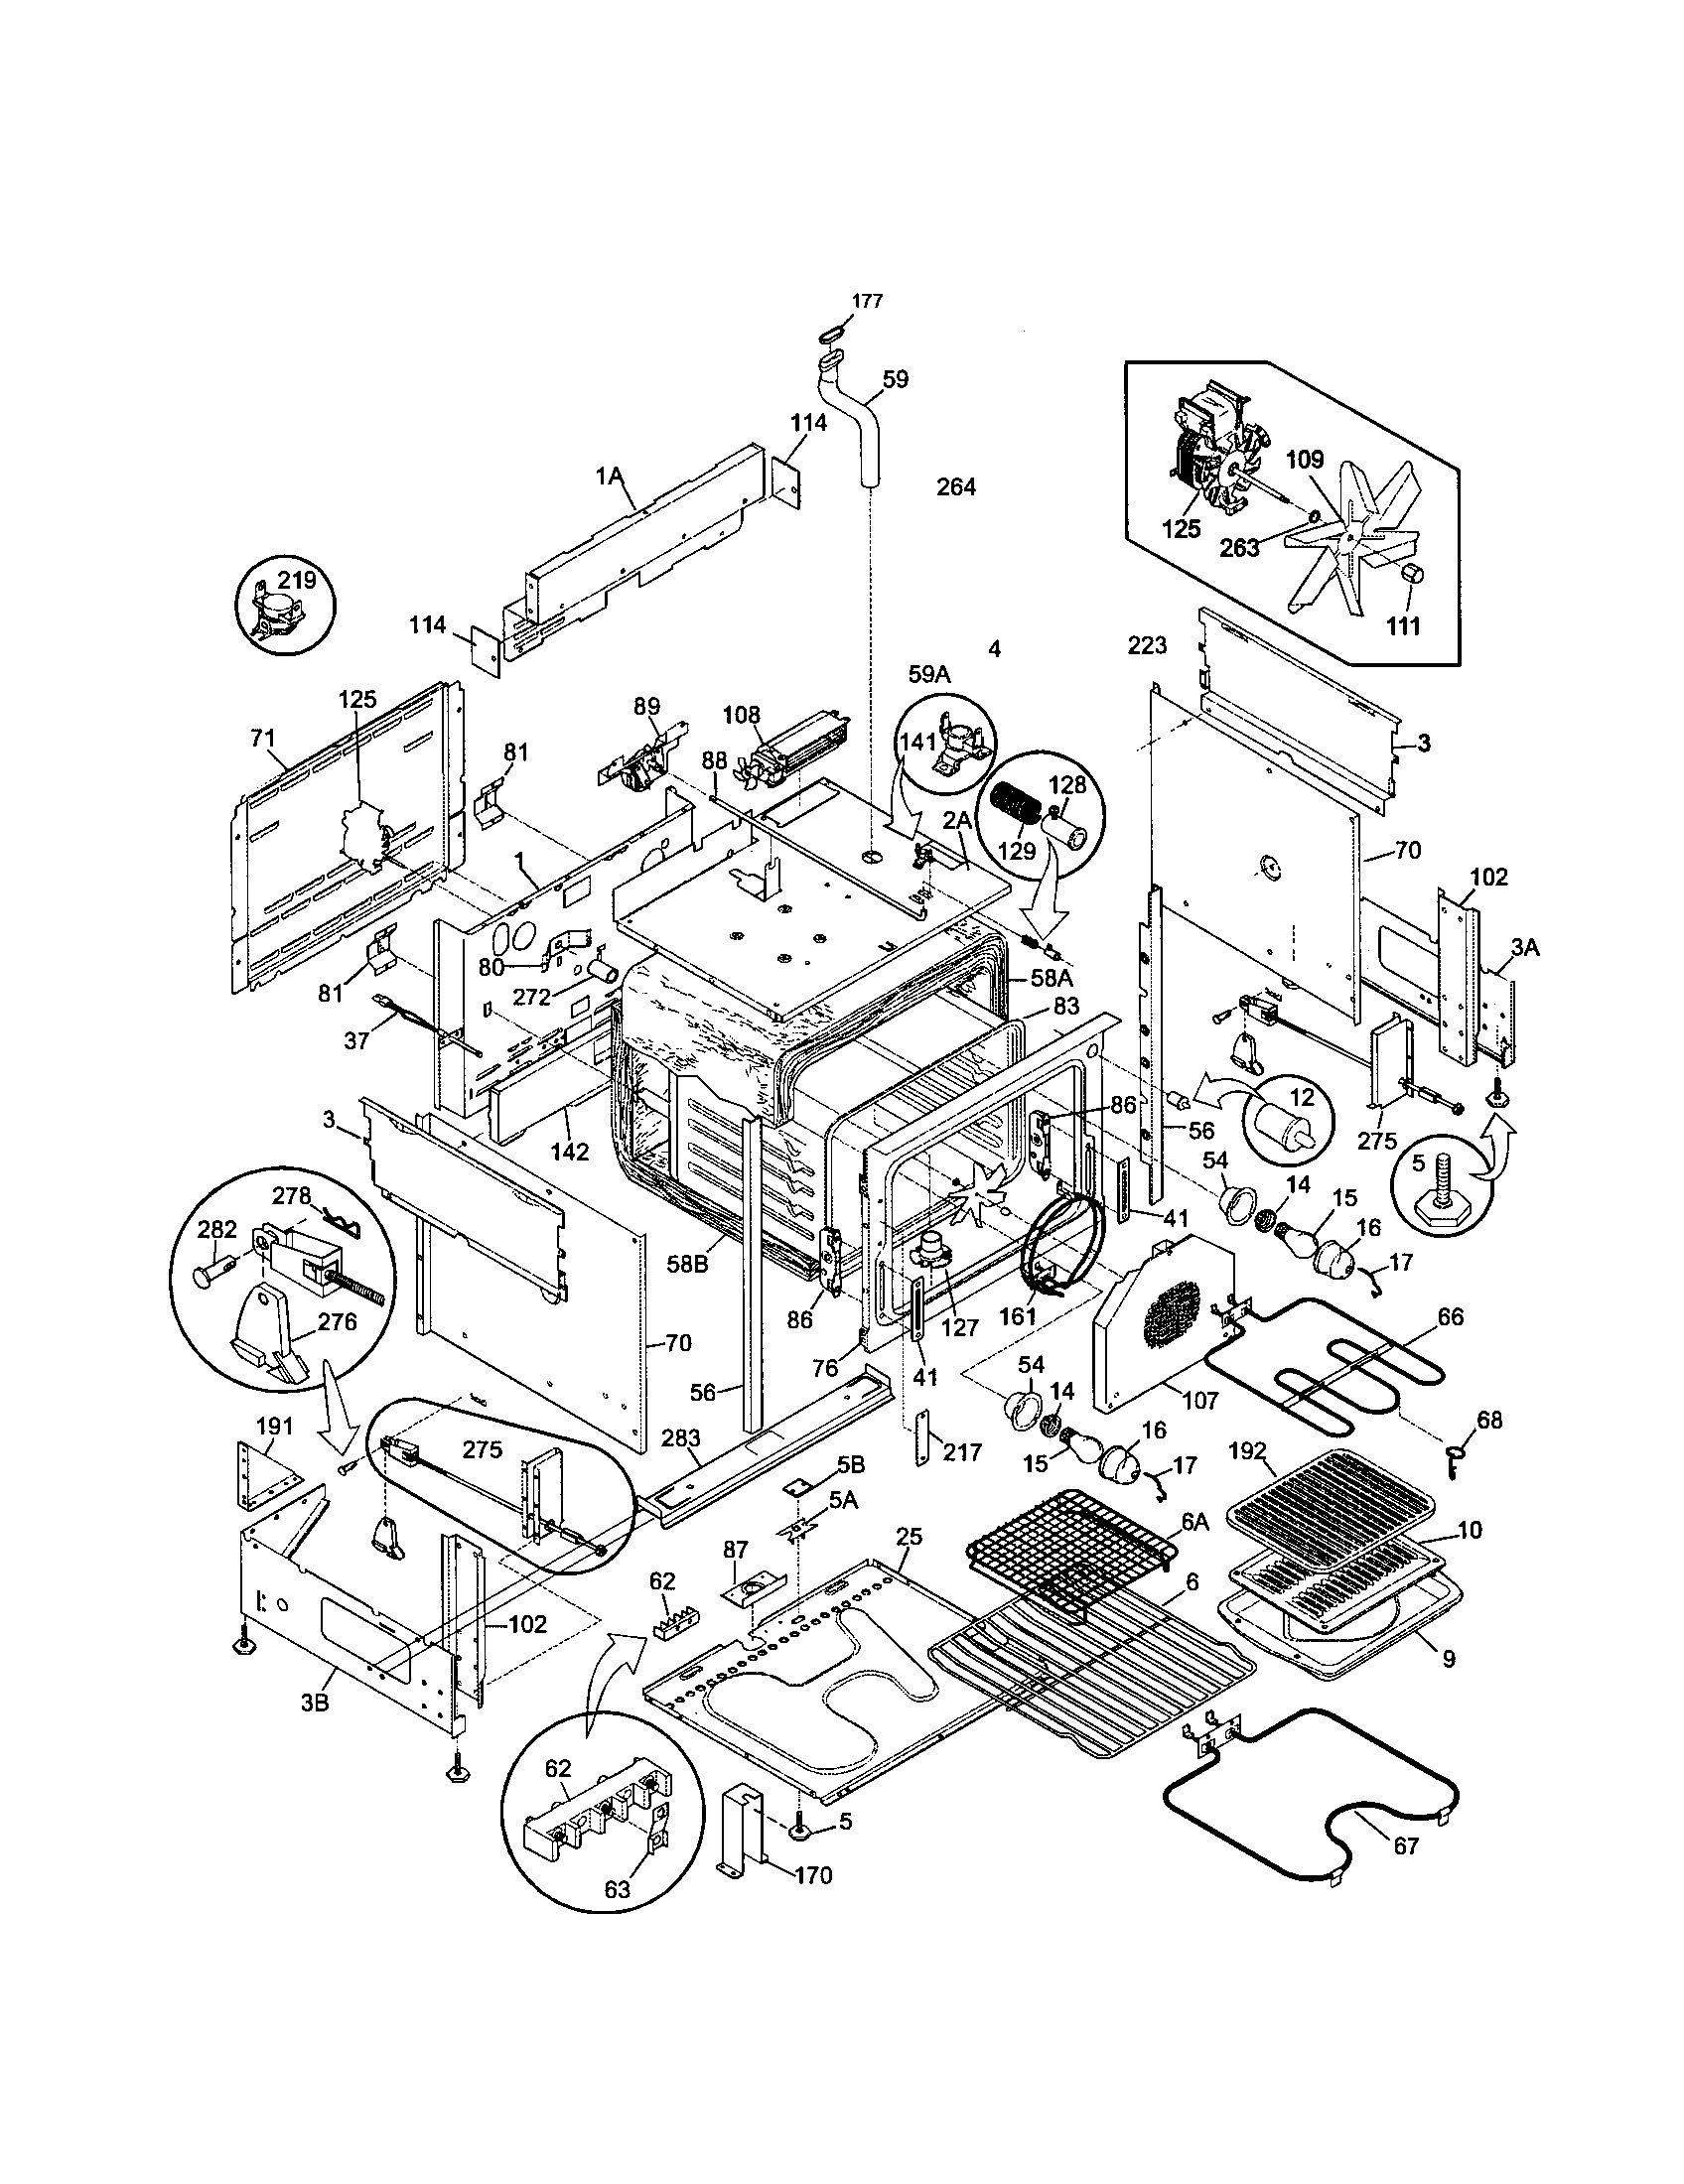 Wiring Diagram For A Kenmore Dryer Power Switch : 47